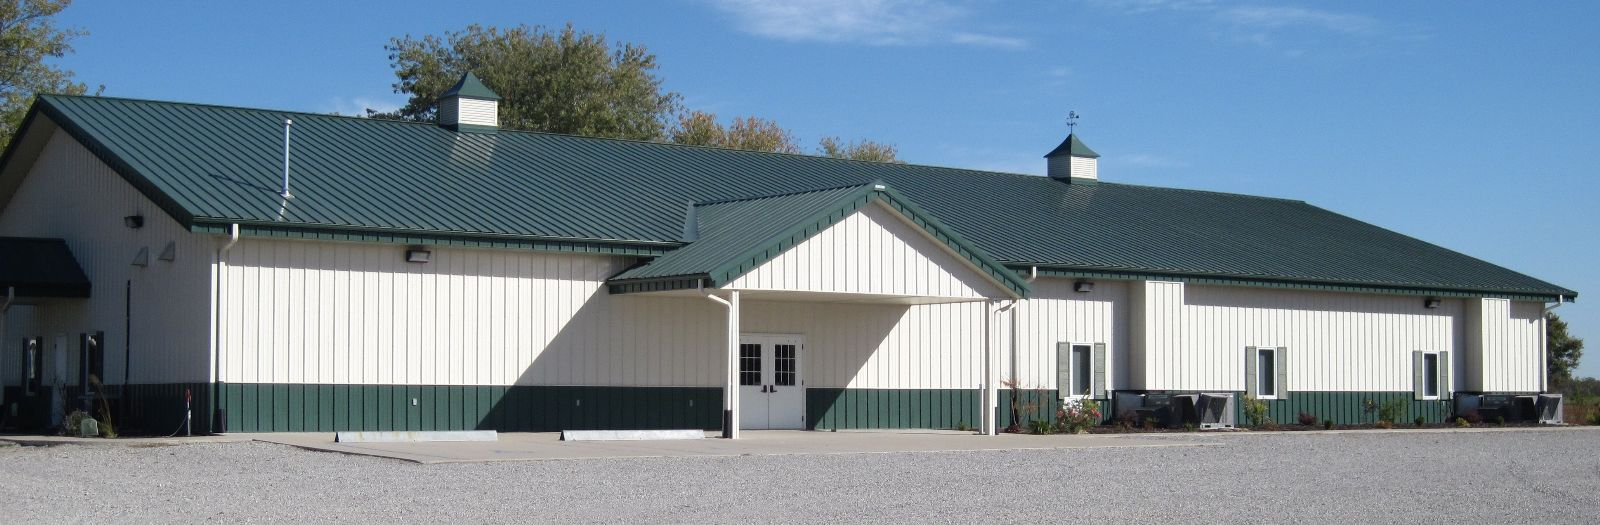 Audrain County 4H Center